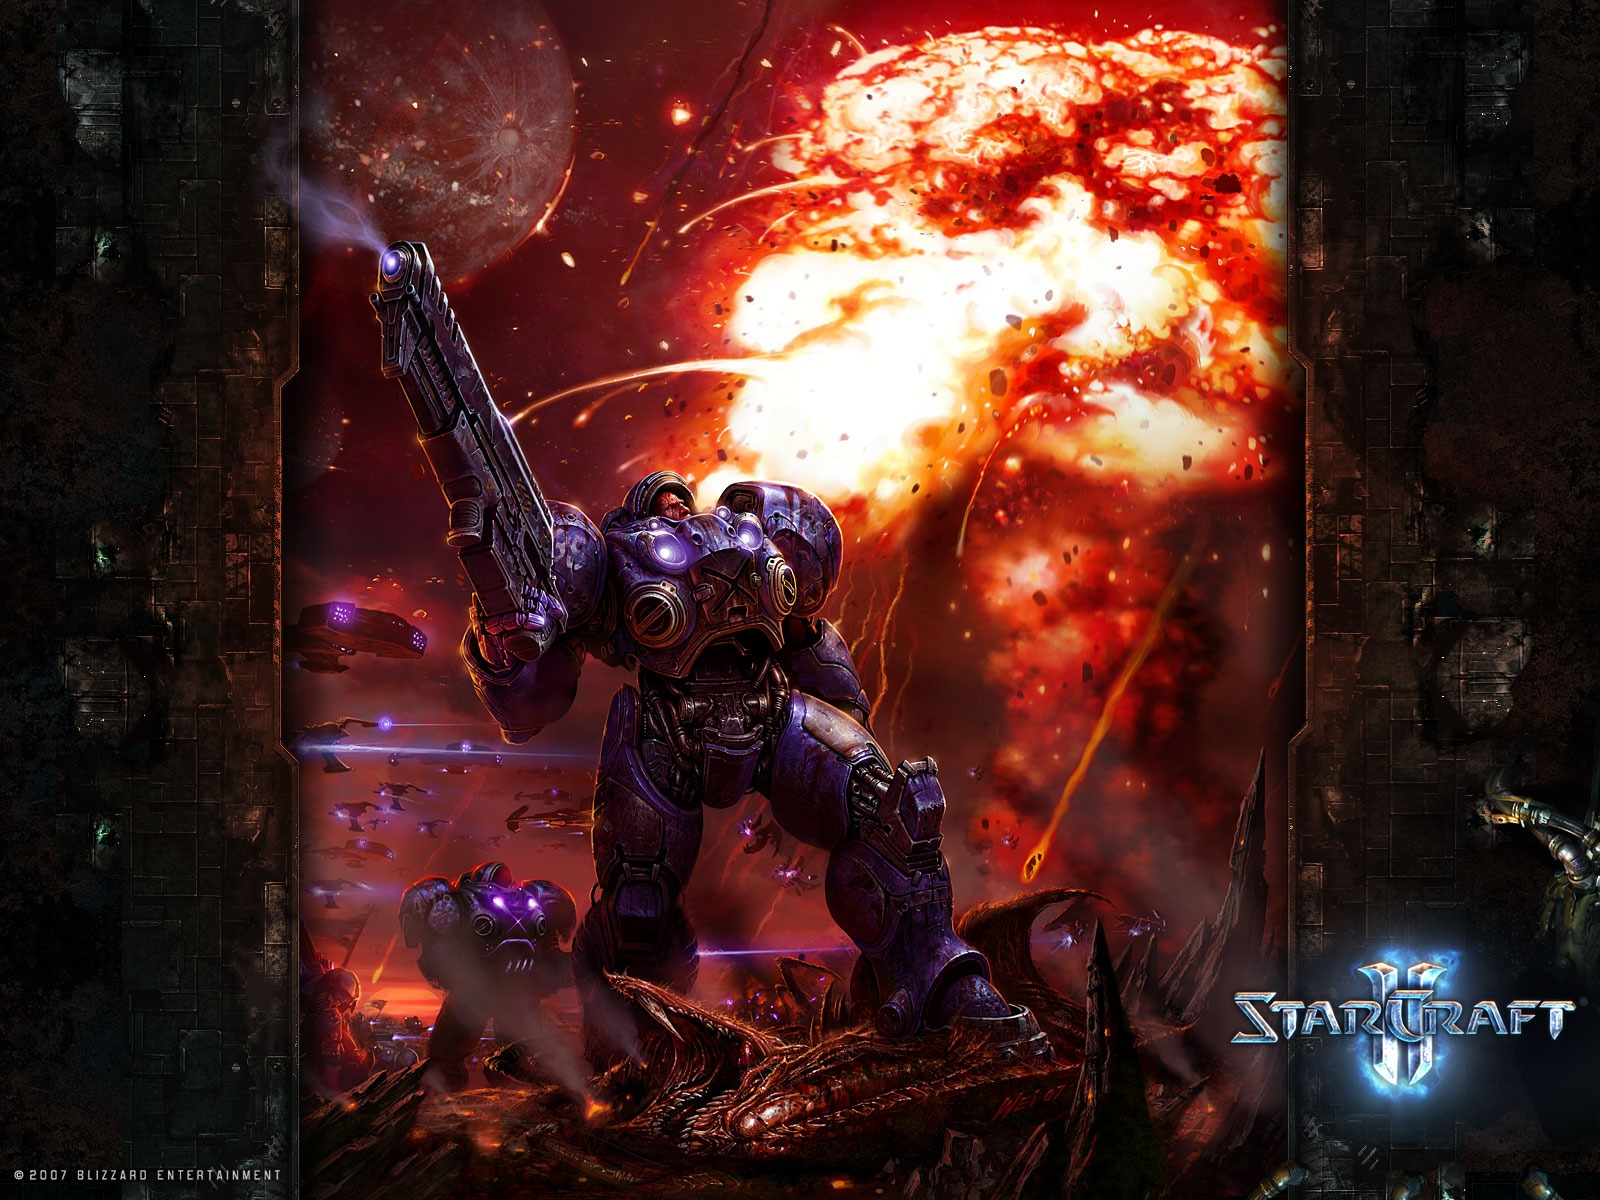 Marine Wallpaper Starcraft Games Wallpapers in jpg format for free